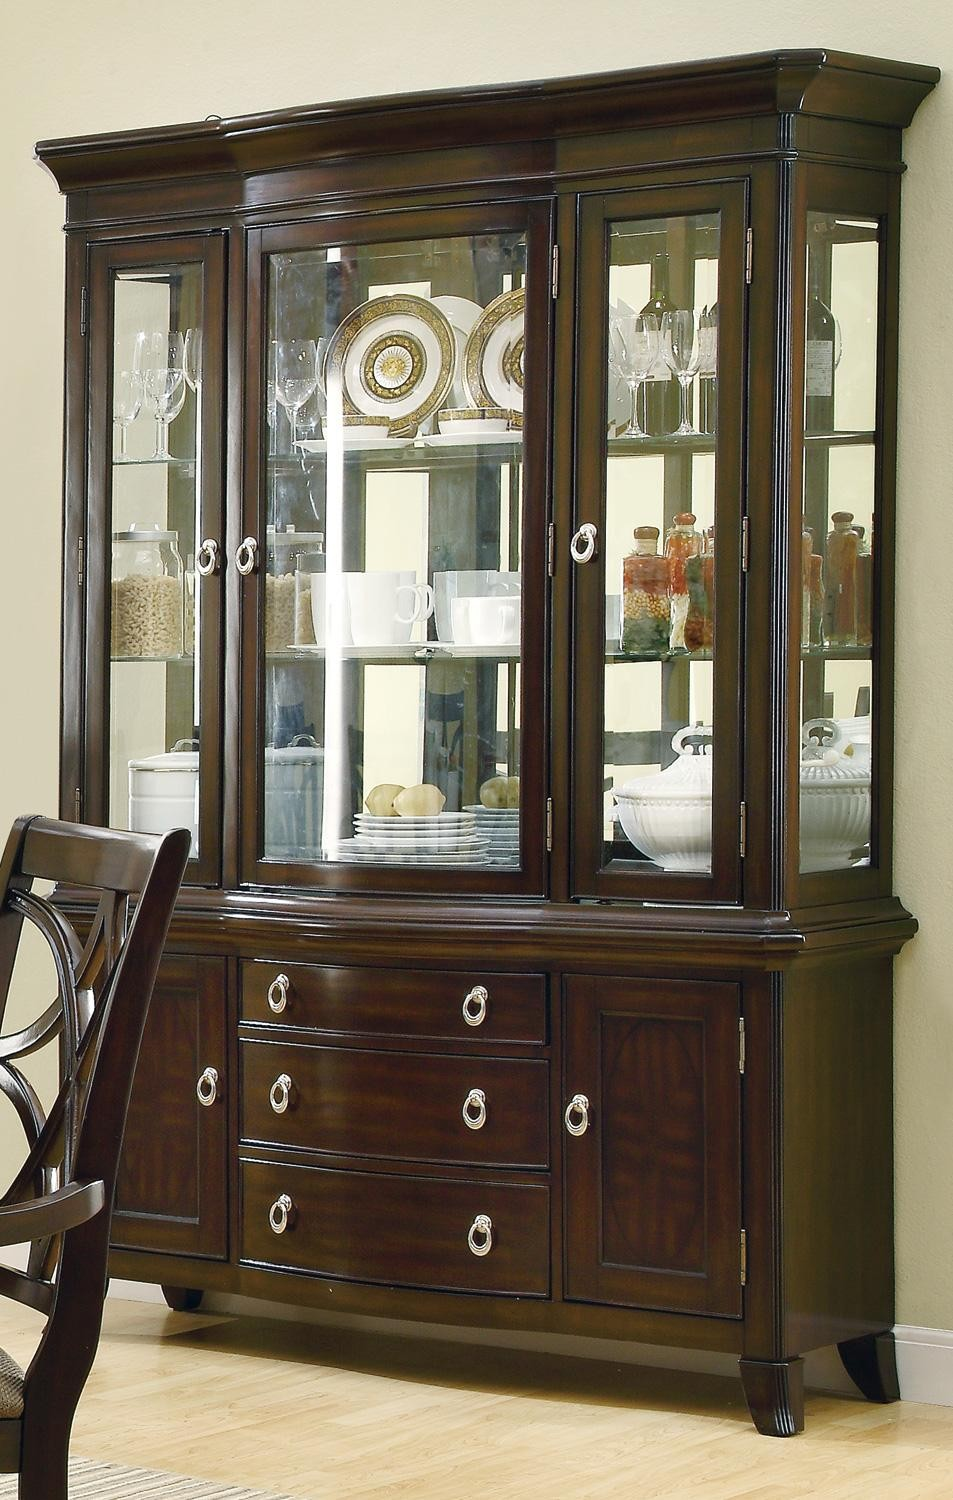 Dining Room Hutches Small Hutch Furniture Room Furniture: Meredith Espresso Buffet/Hutch From Coaster (103534